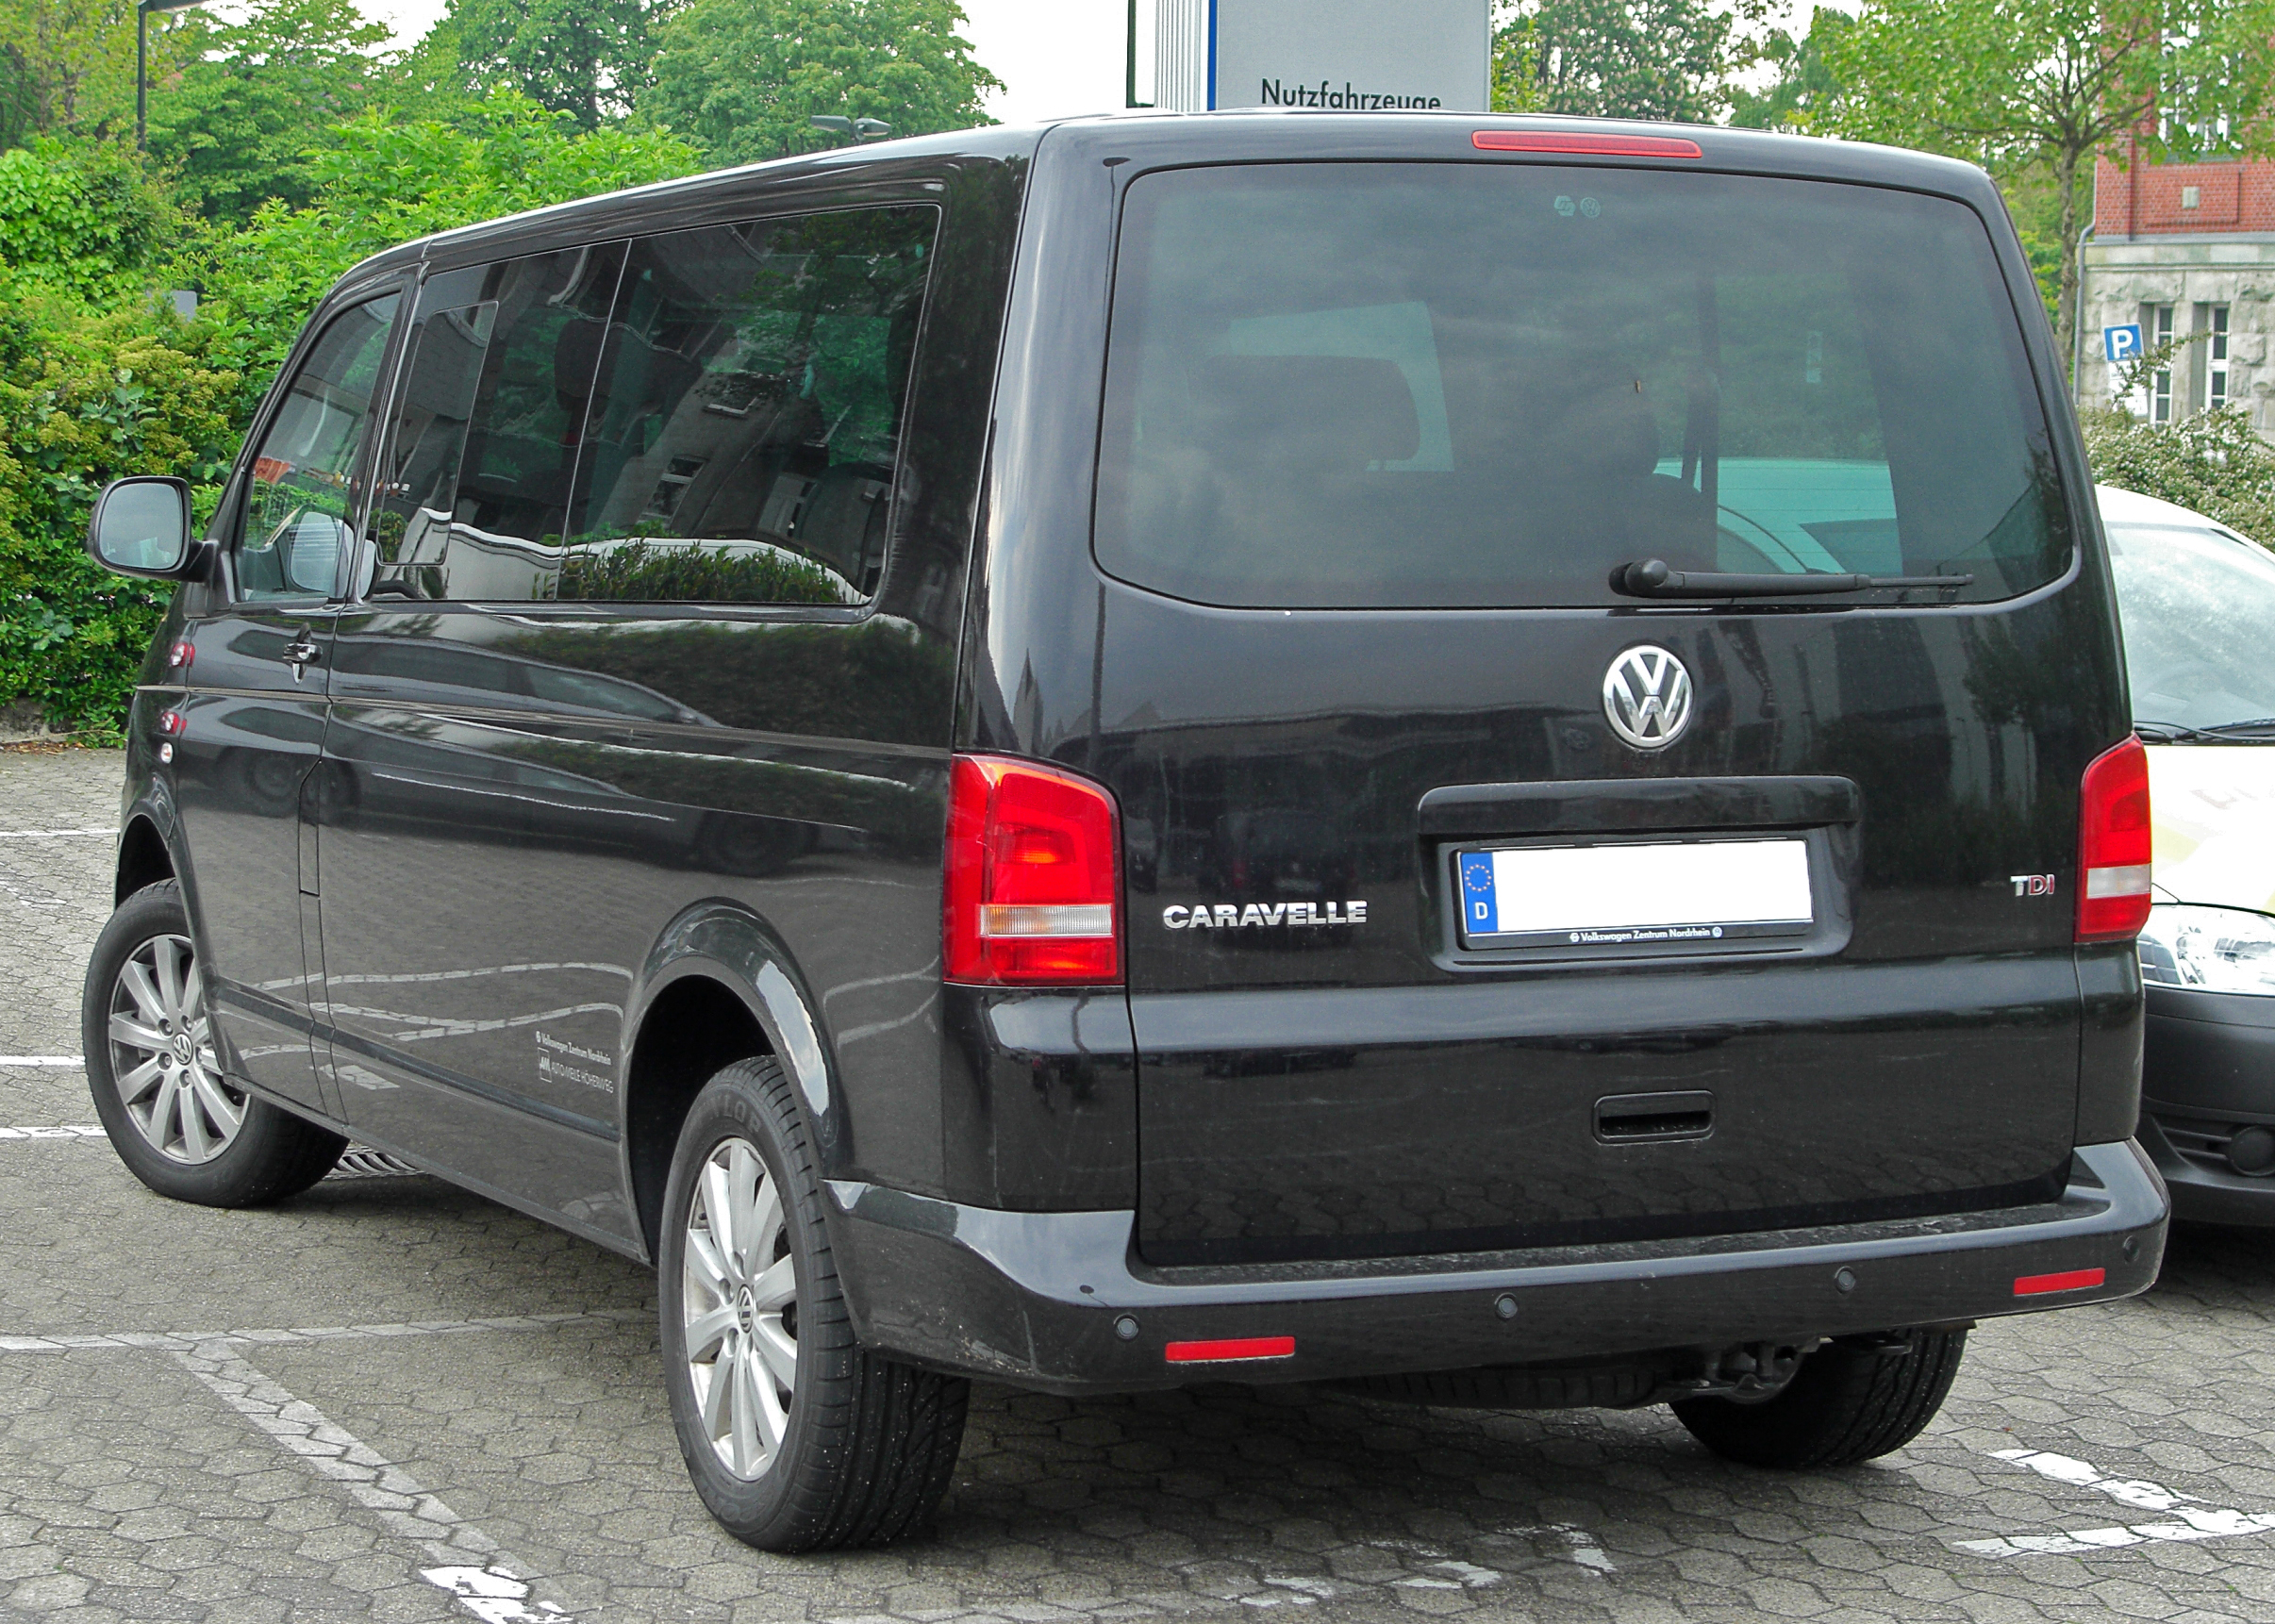 VW Caravelle photo 12